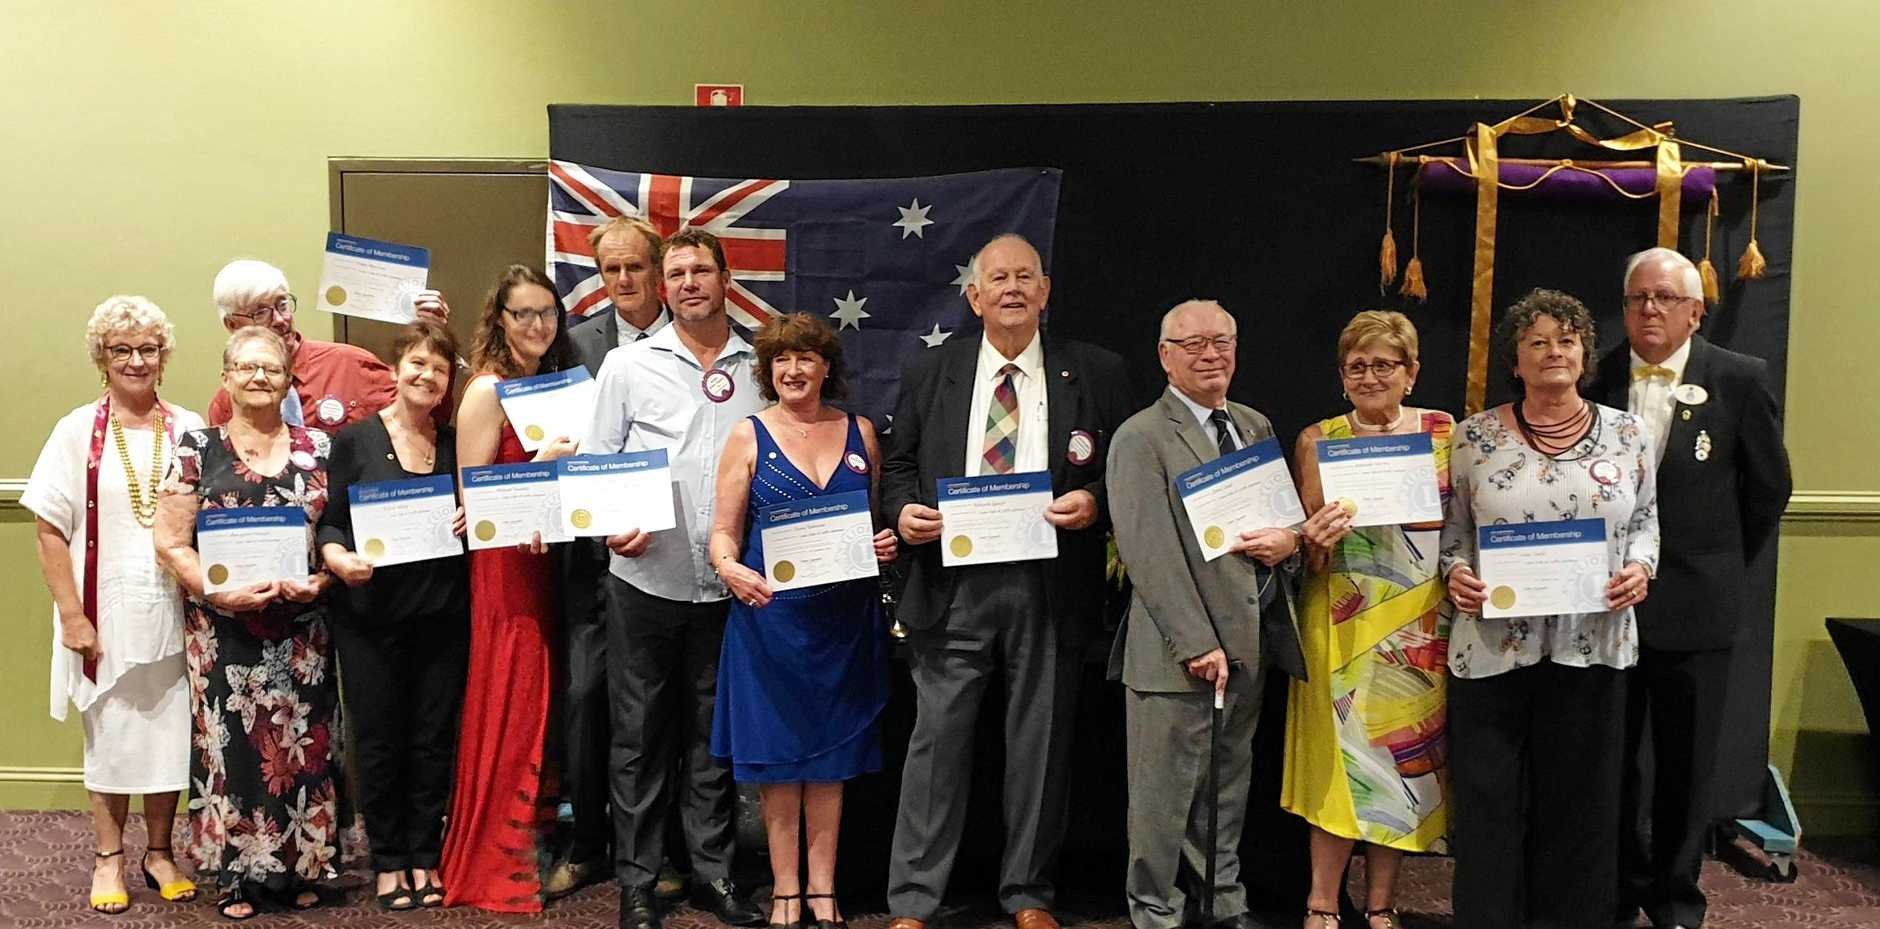 NEWLY INDUCTED: Lions membership chairperson Robin Parker, new members Margaret Pressor, Finley Morrison, Kerrie Wilson, Jacqui and Michael Radecki, Kirk Taylor, Diane Robinson, Richard Guest, John Lloyd, Adelaide Del-Pin, Lexie Clark and District Governor David Emanuel.